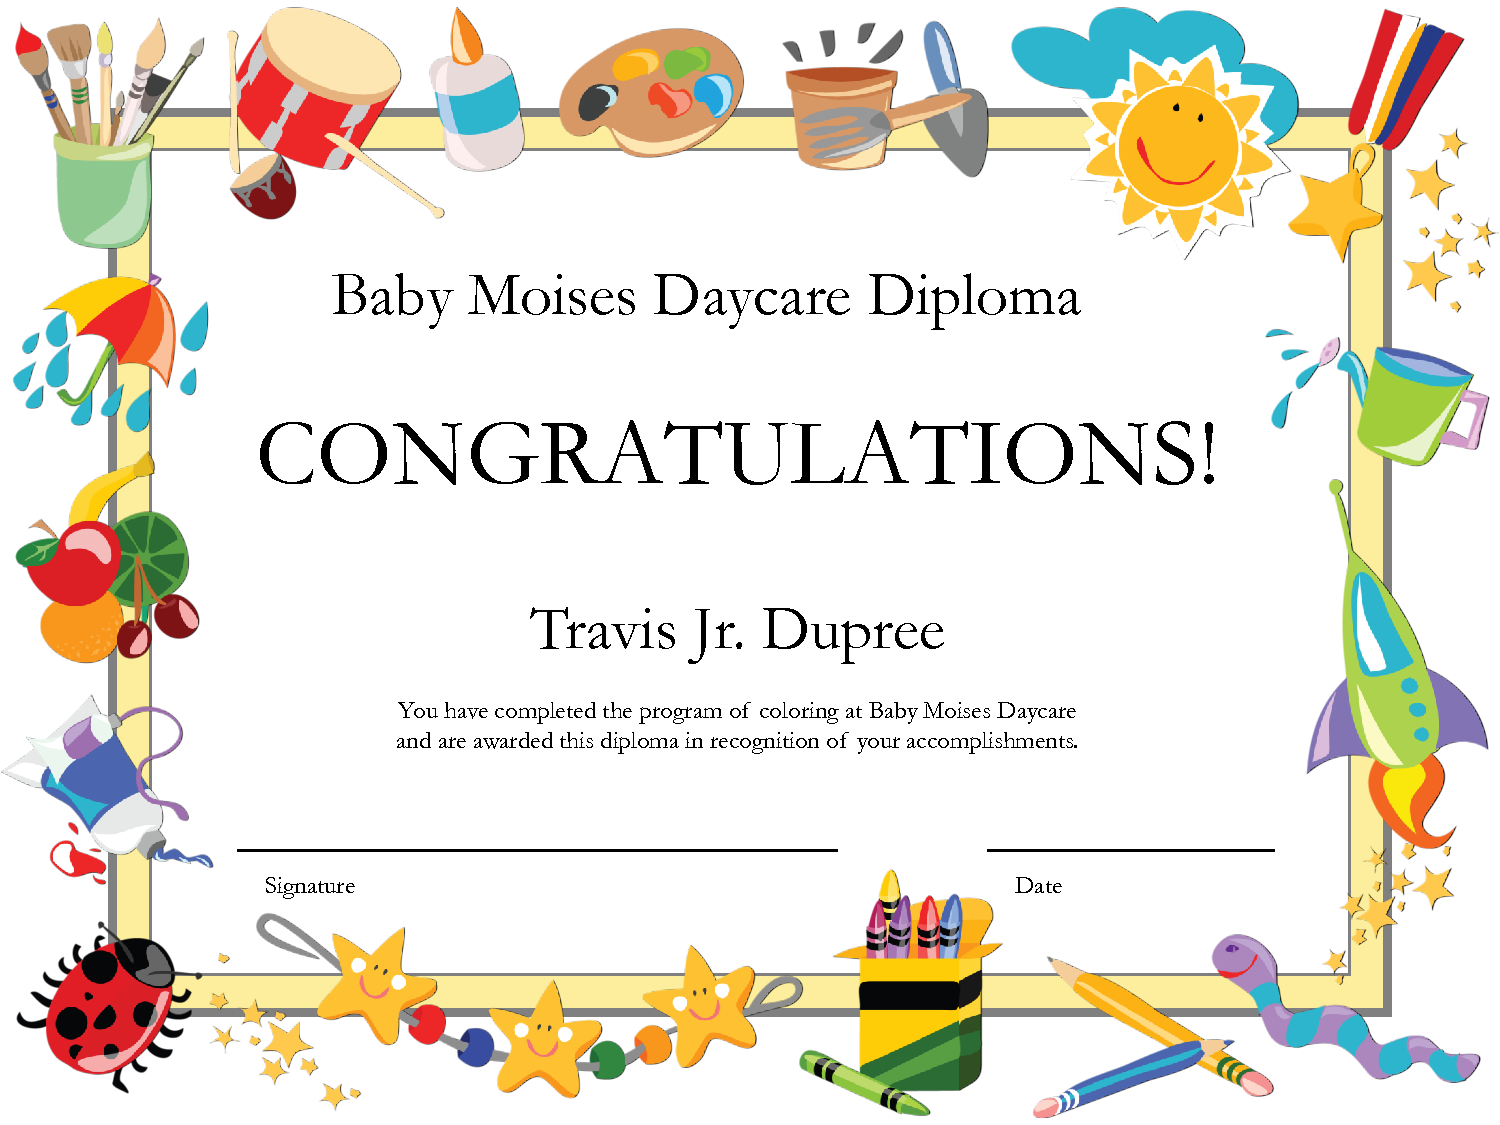 Bordes diplomas para imprimir technology news about genuardis kindergarten diploma certificate free certificate templates in academic award certificates category yadclub Choice Image